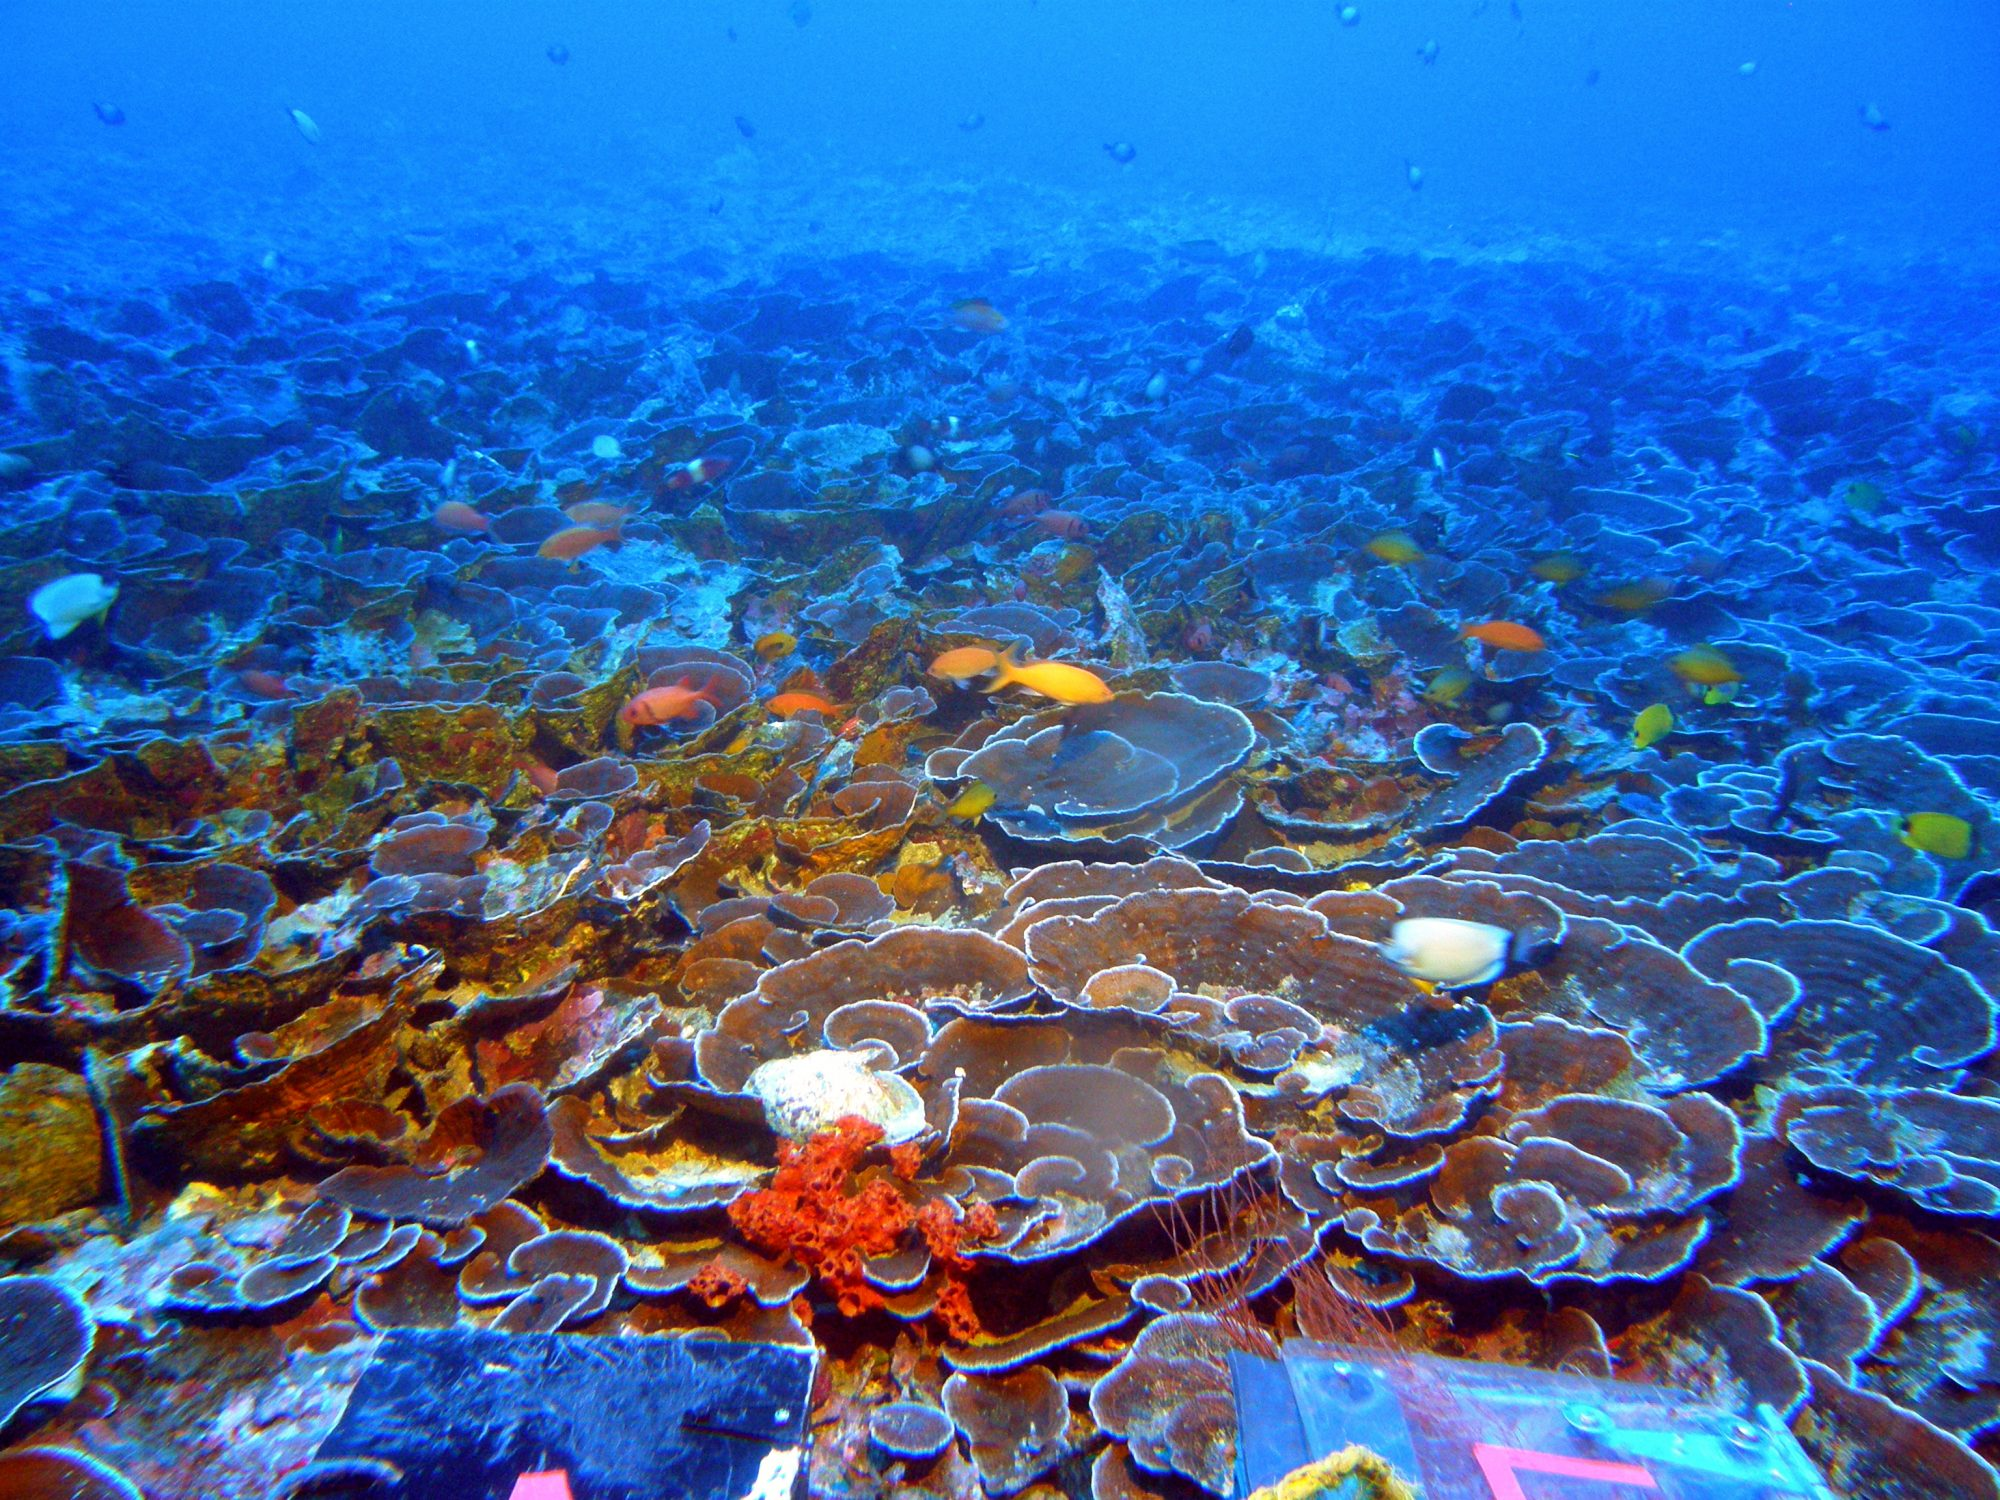 Corals that live in the mesophotic